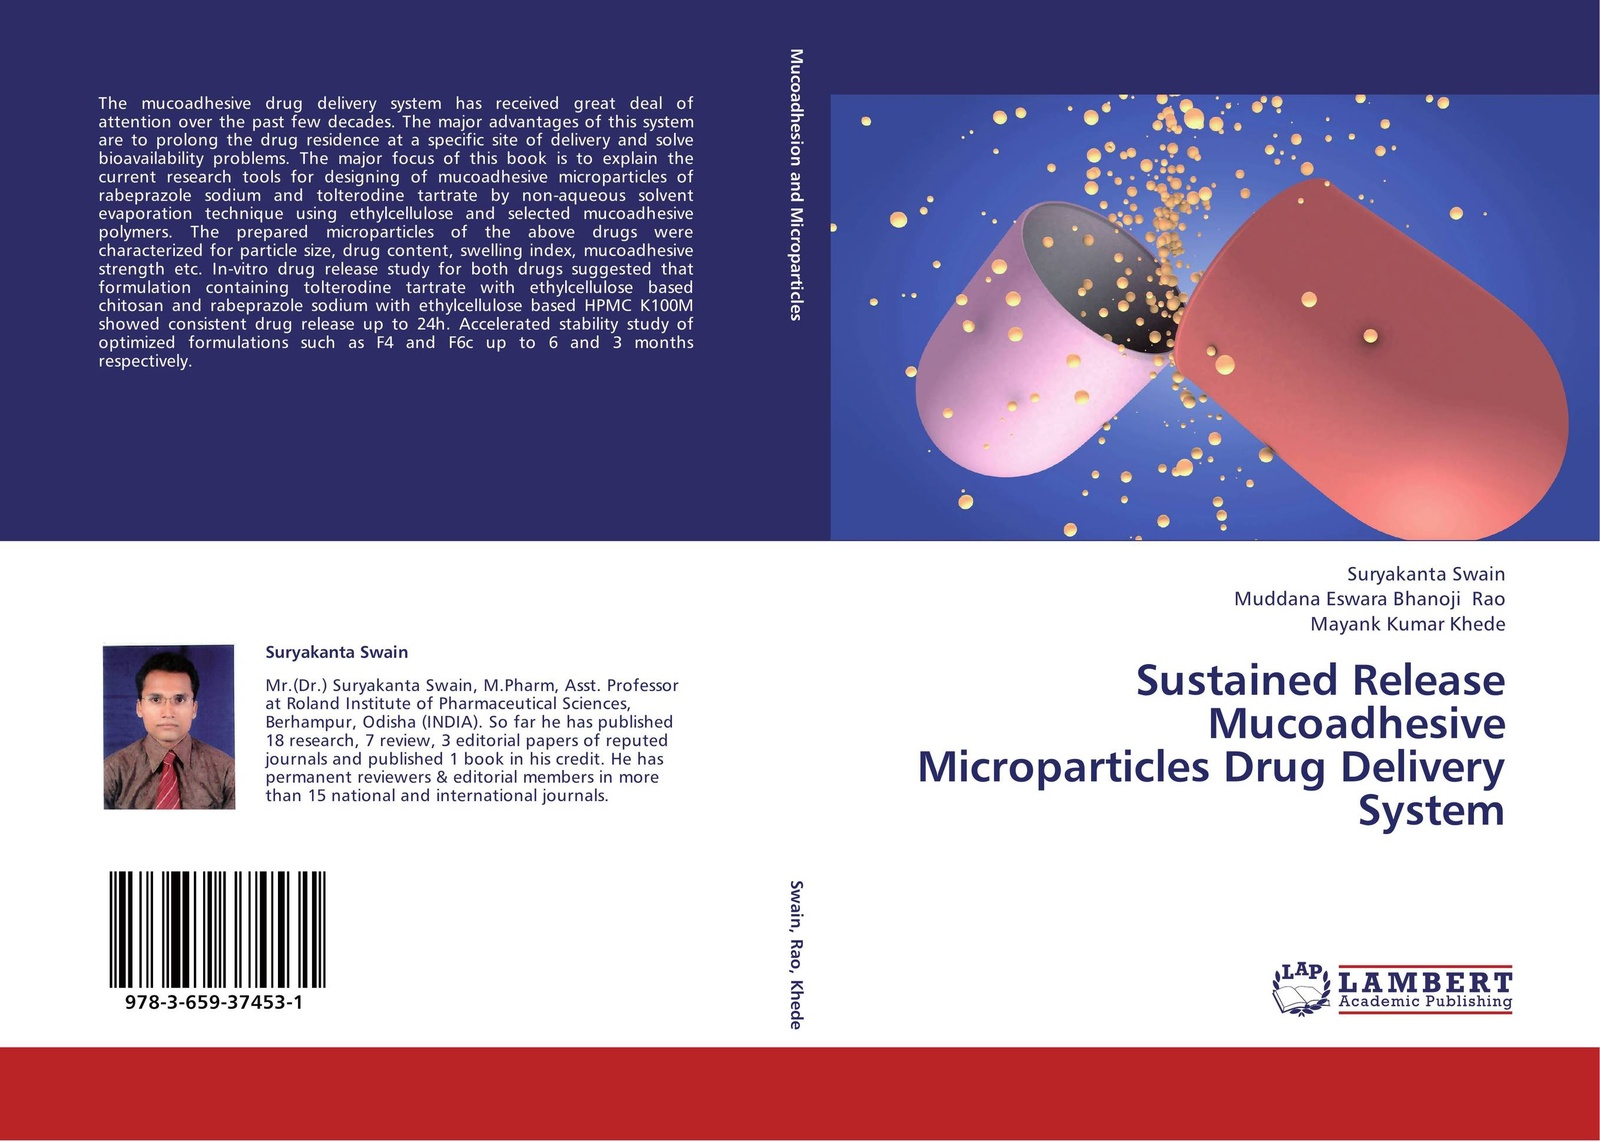 Suryakanta Swain,Muddana Eswara Bhanoji Rao and Mayank Kumar Khede Sustained Release Mucoadhesive Microparticles Drug Delivery System characterization of microparticles for lung cancer delivery